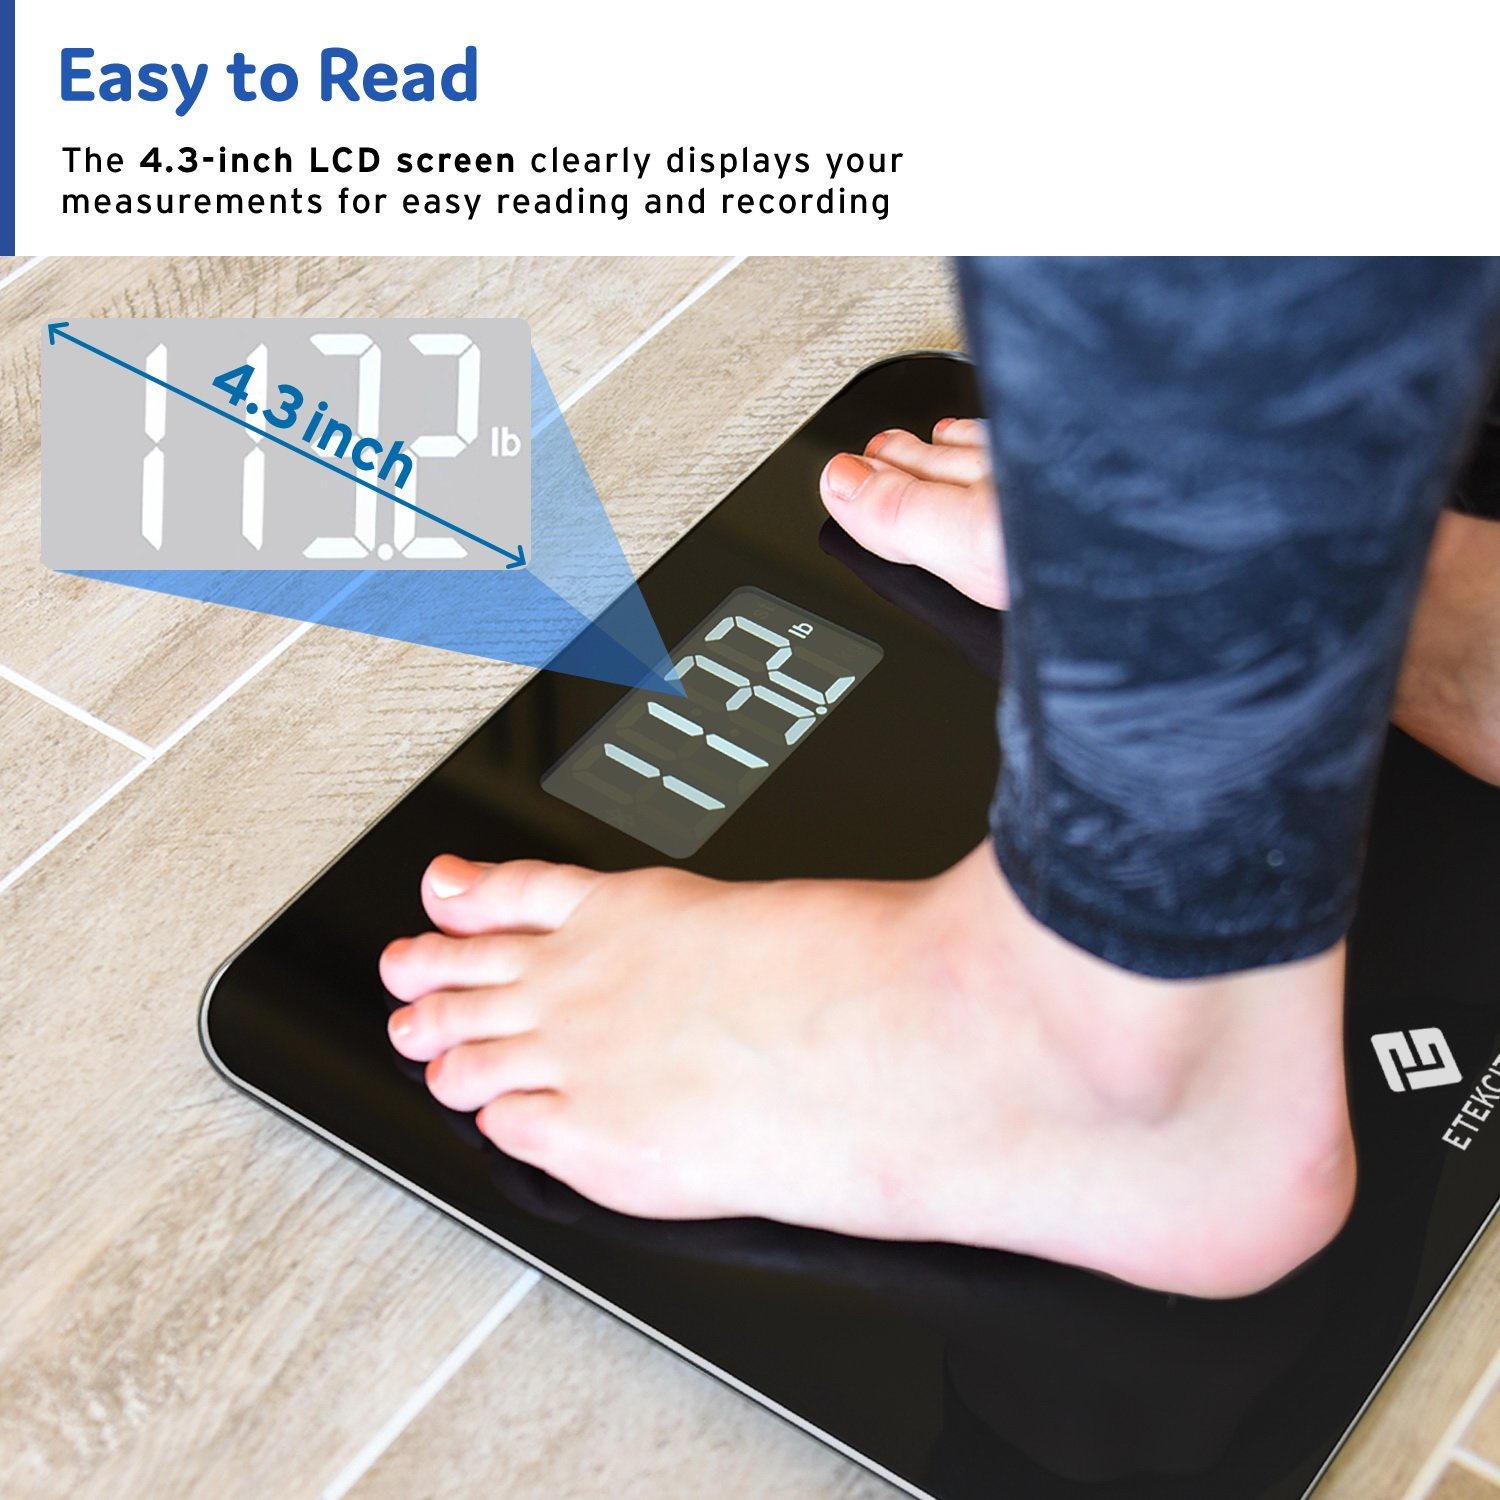 Etekcity Digital Body Weight Bathroom Scale with Step-On Technology, 440 Pounds, Body Tape Measure Included (Black) EB441OB by Etekcity (Image #2)